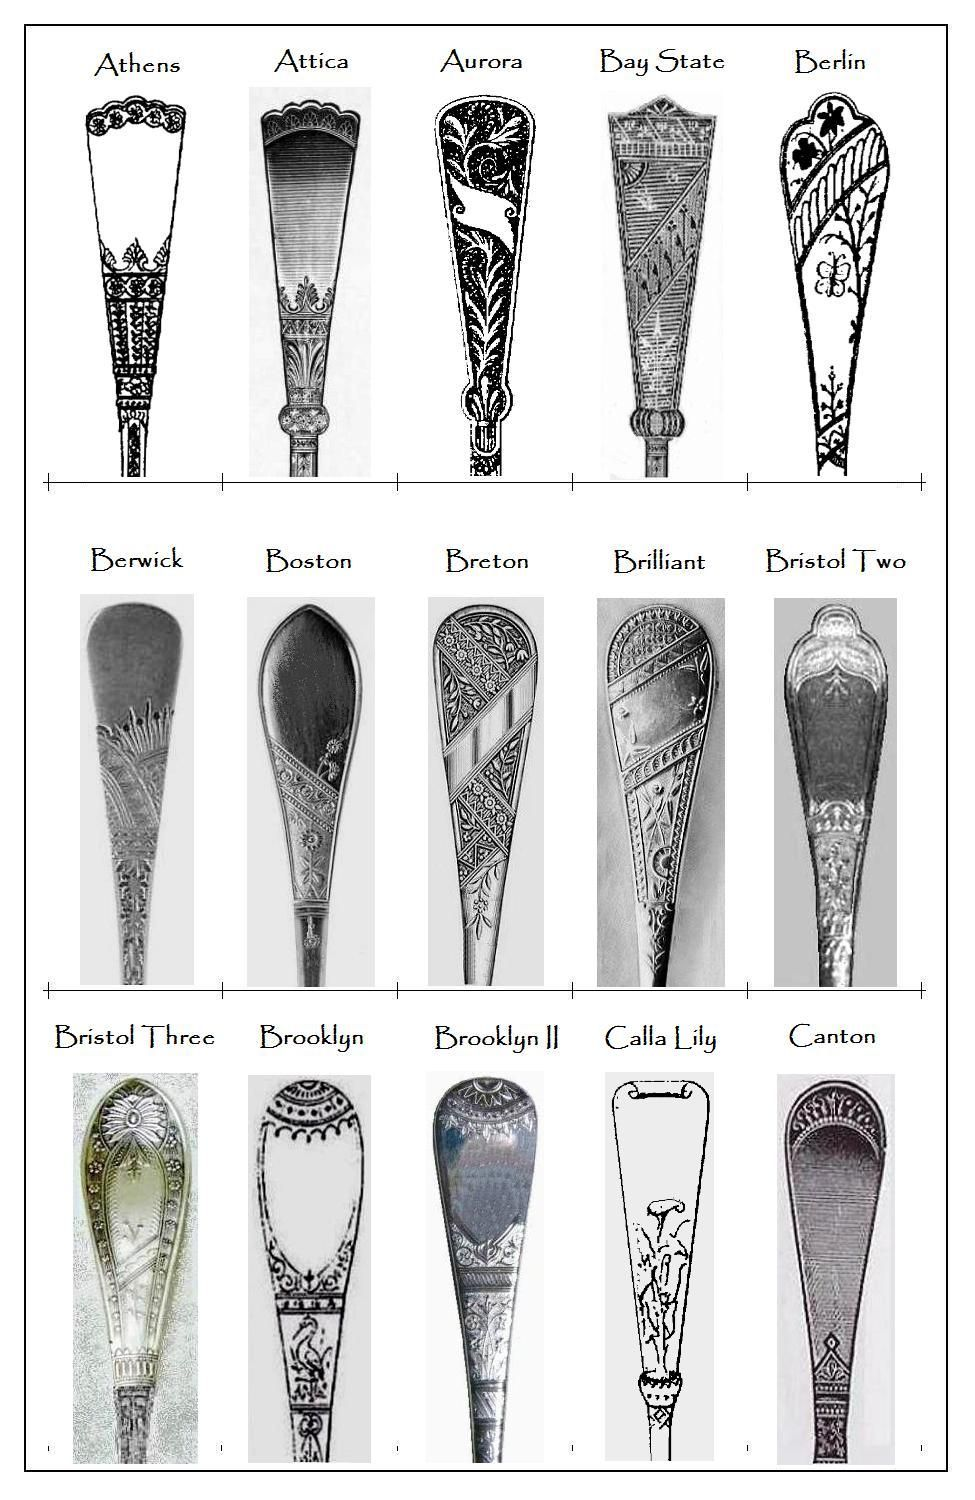 Some 19th Century Flatware Patterns Flatware And Patterns